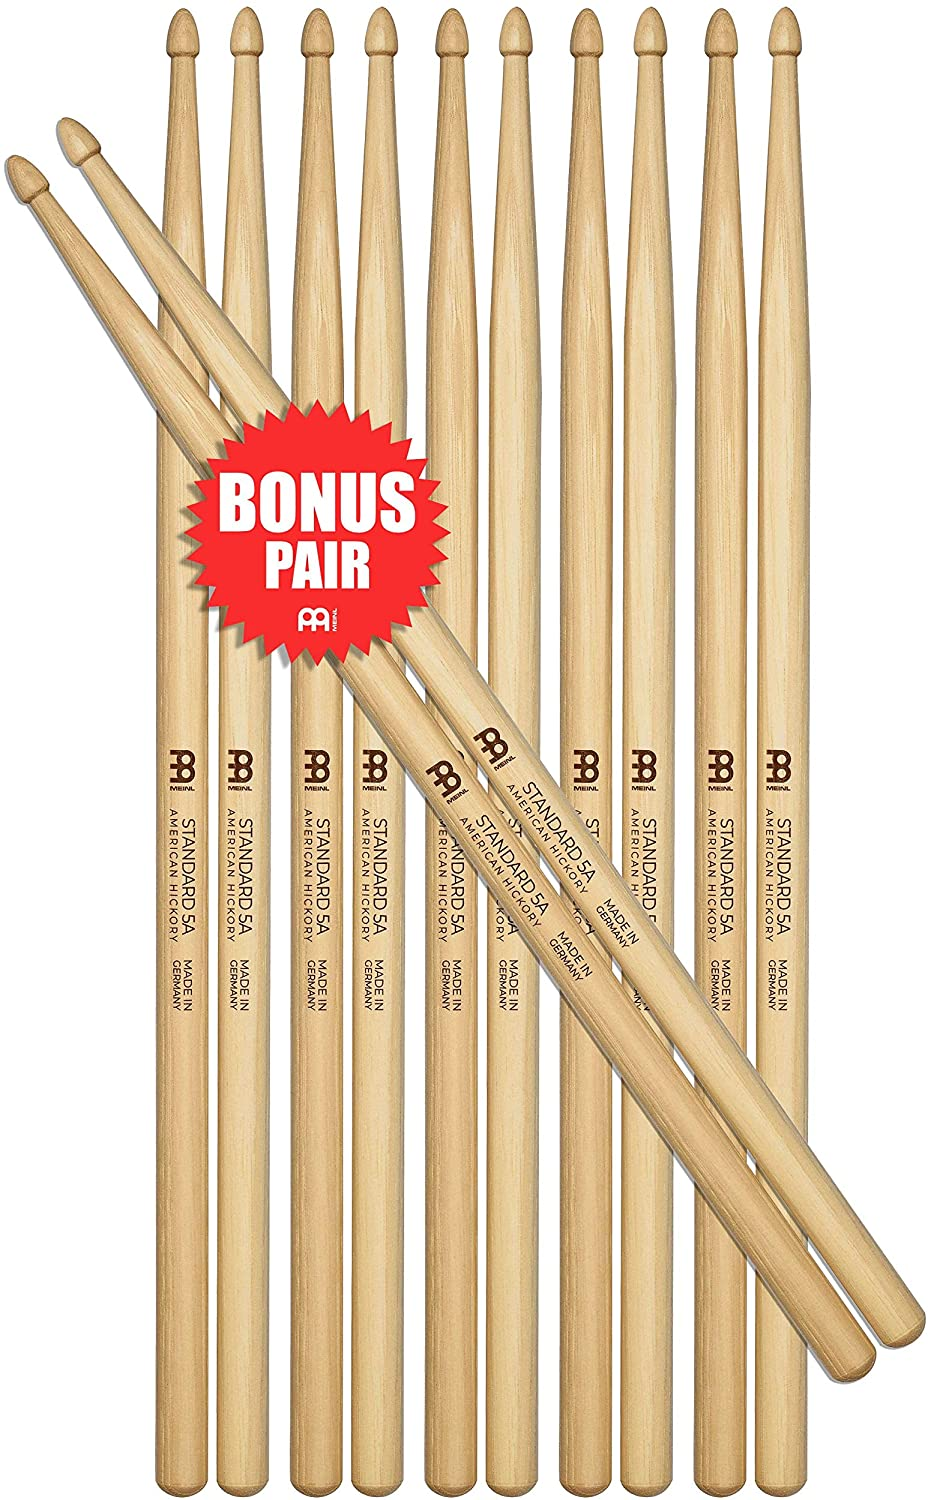 Meinl Stick & Brush Drumsticks, Standard 5A Half Brick (6 Pairs, 5 Plus 1 FREE) - American Hickory with Acorn Shape Wood Tip - MADE IN GERMANY (SB101-6)